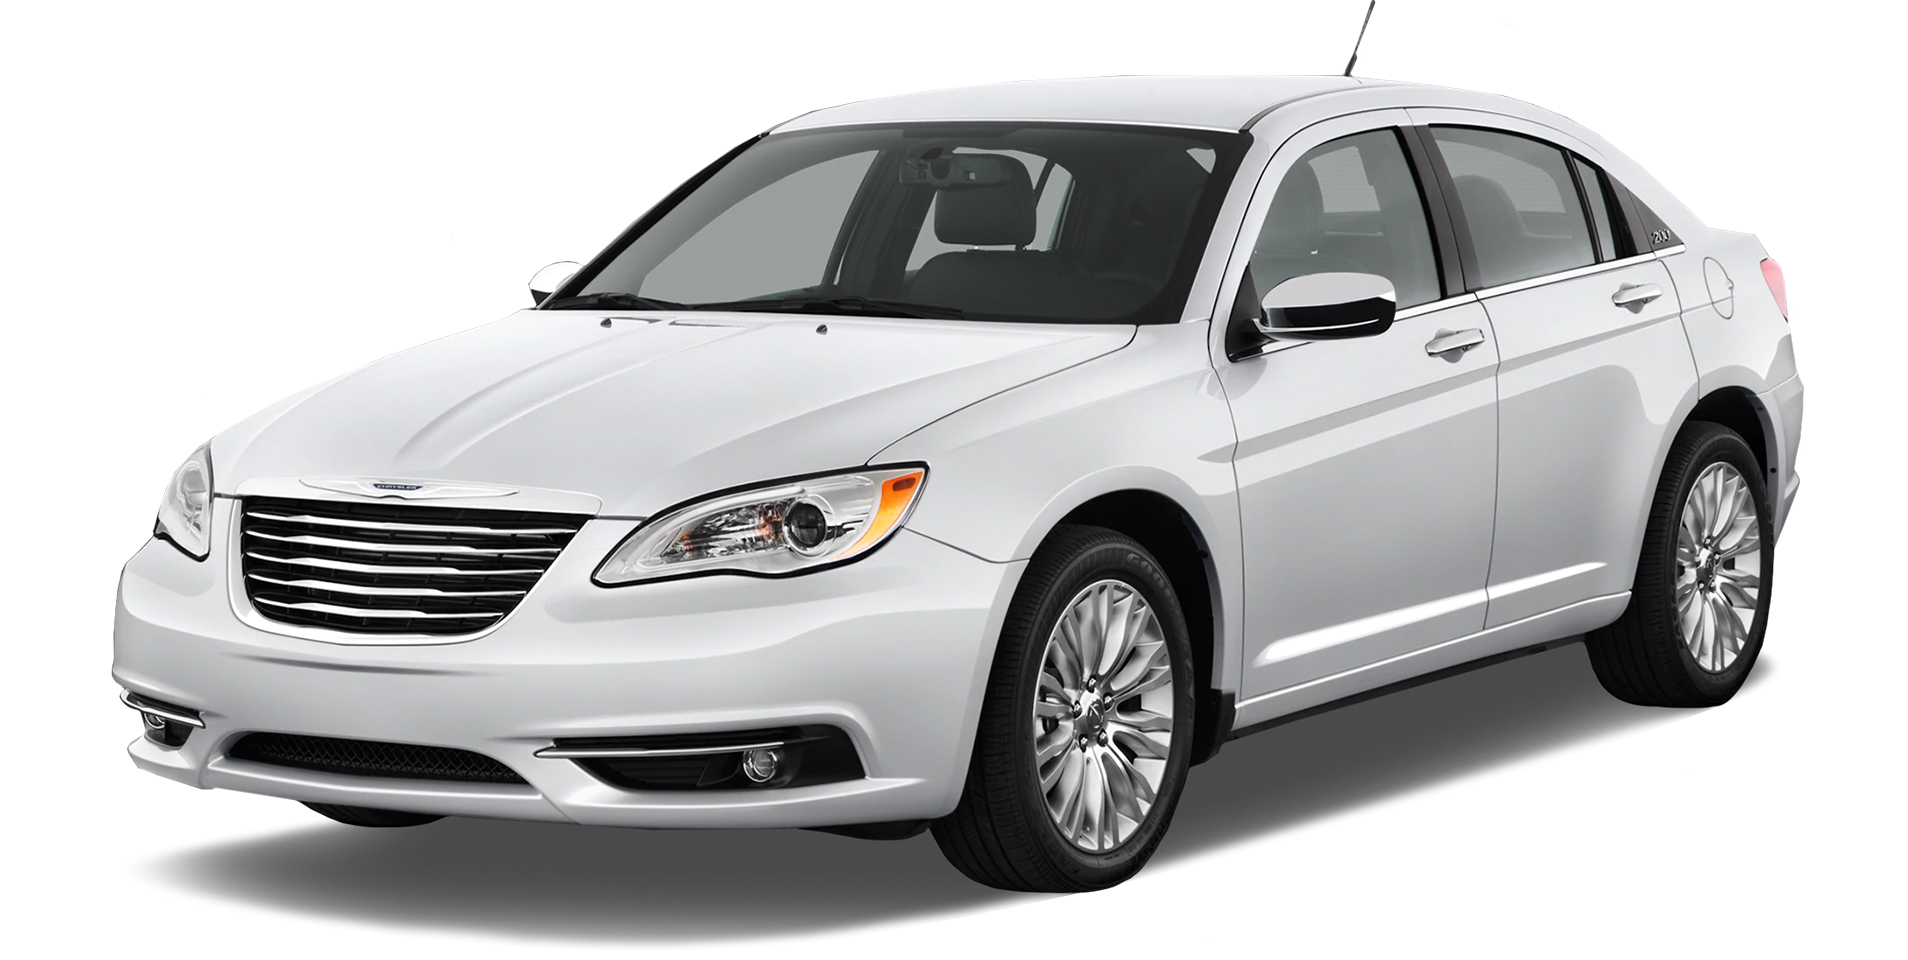 200 chrysler 2011 tipm solutions tipms and repairs